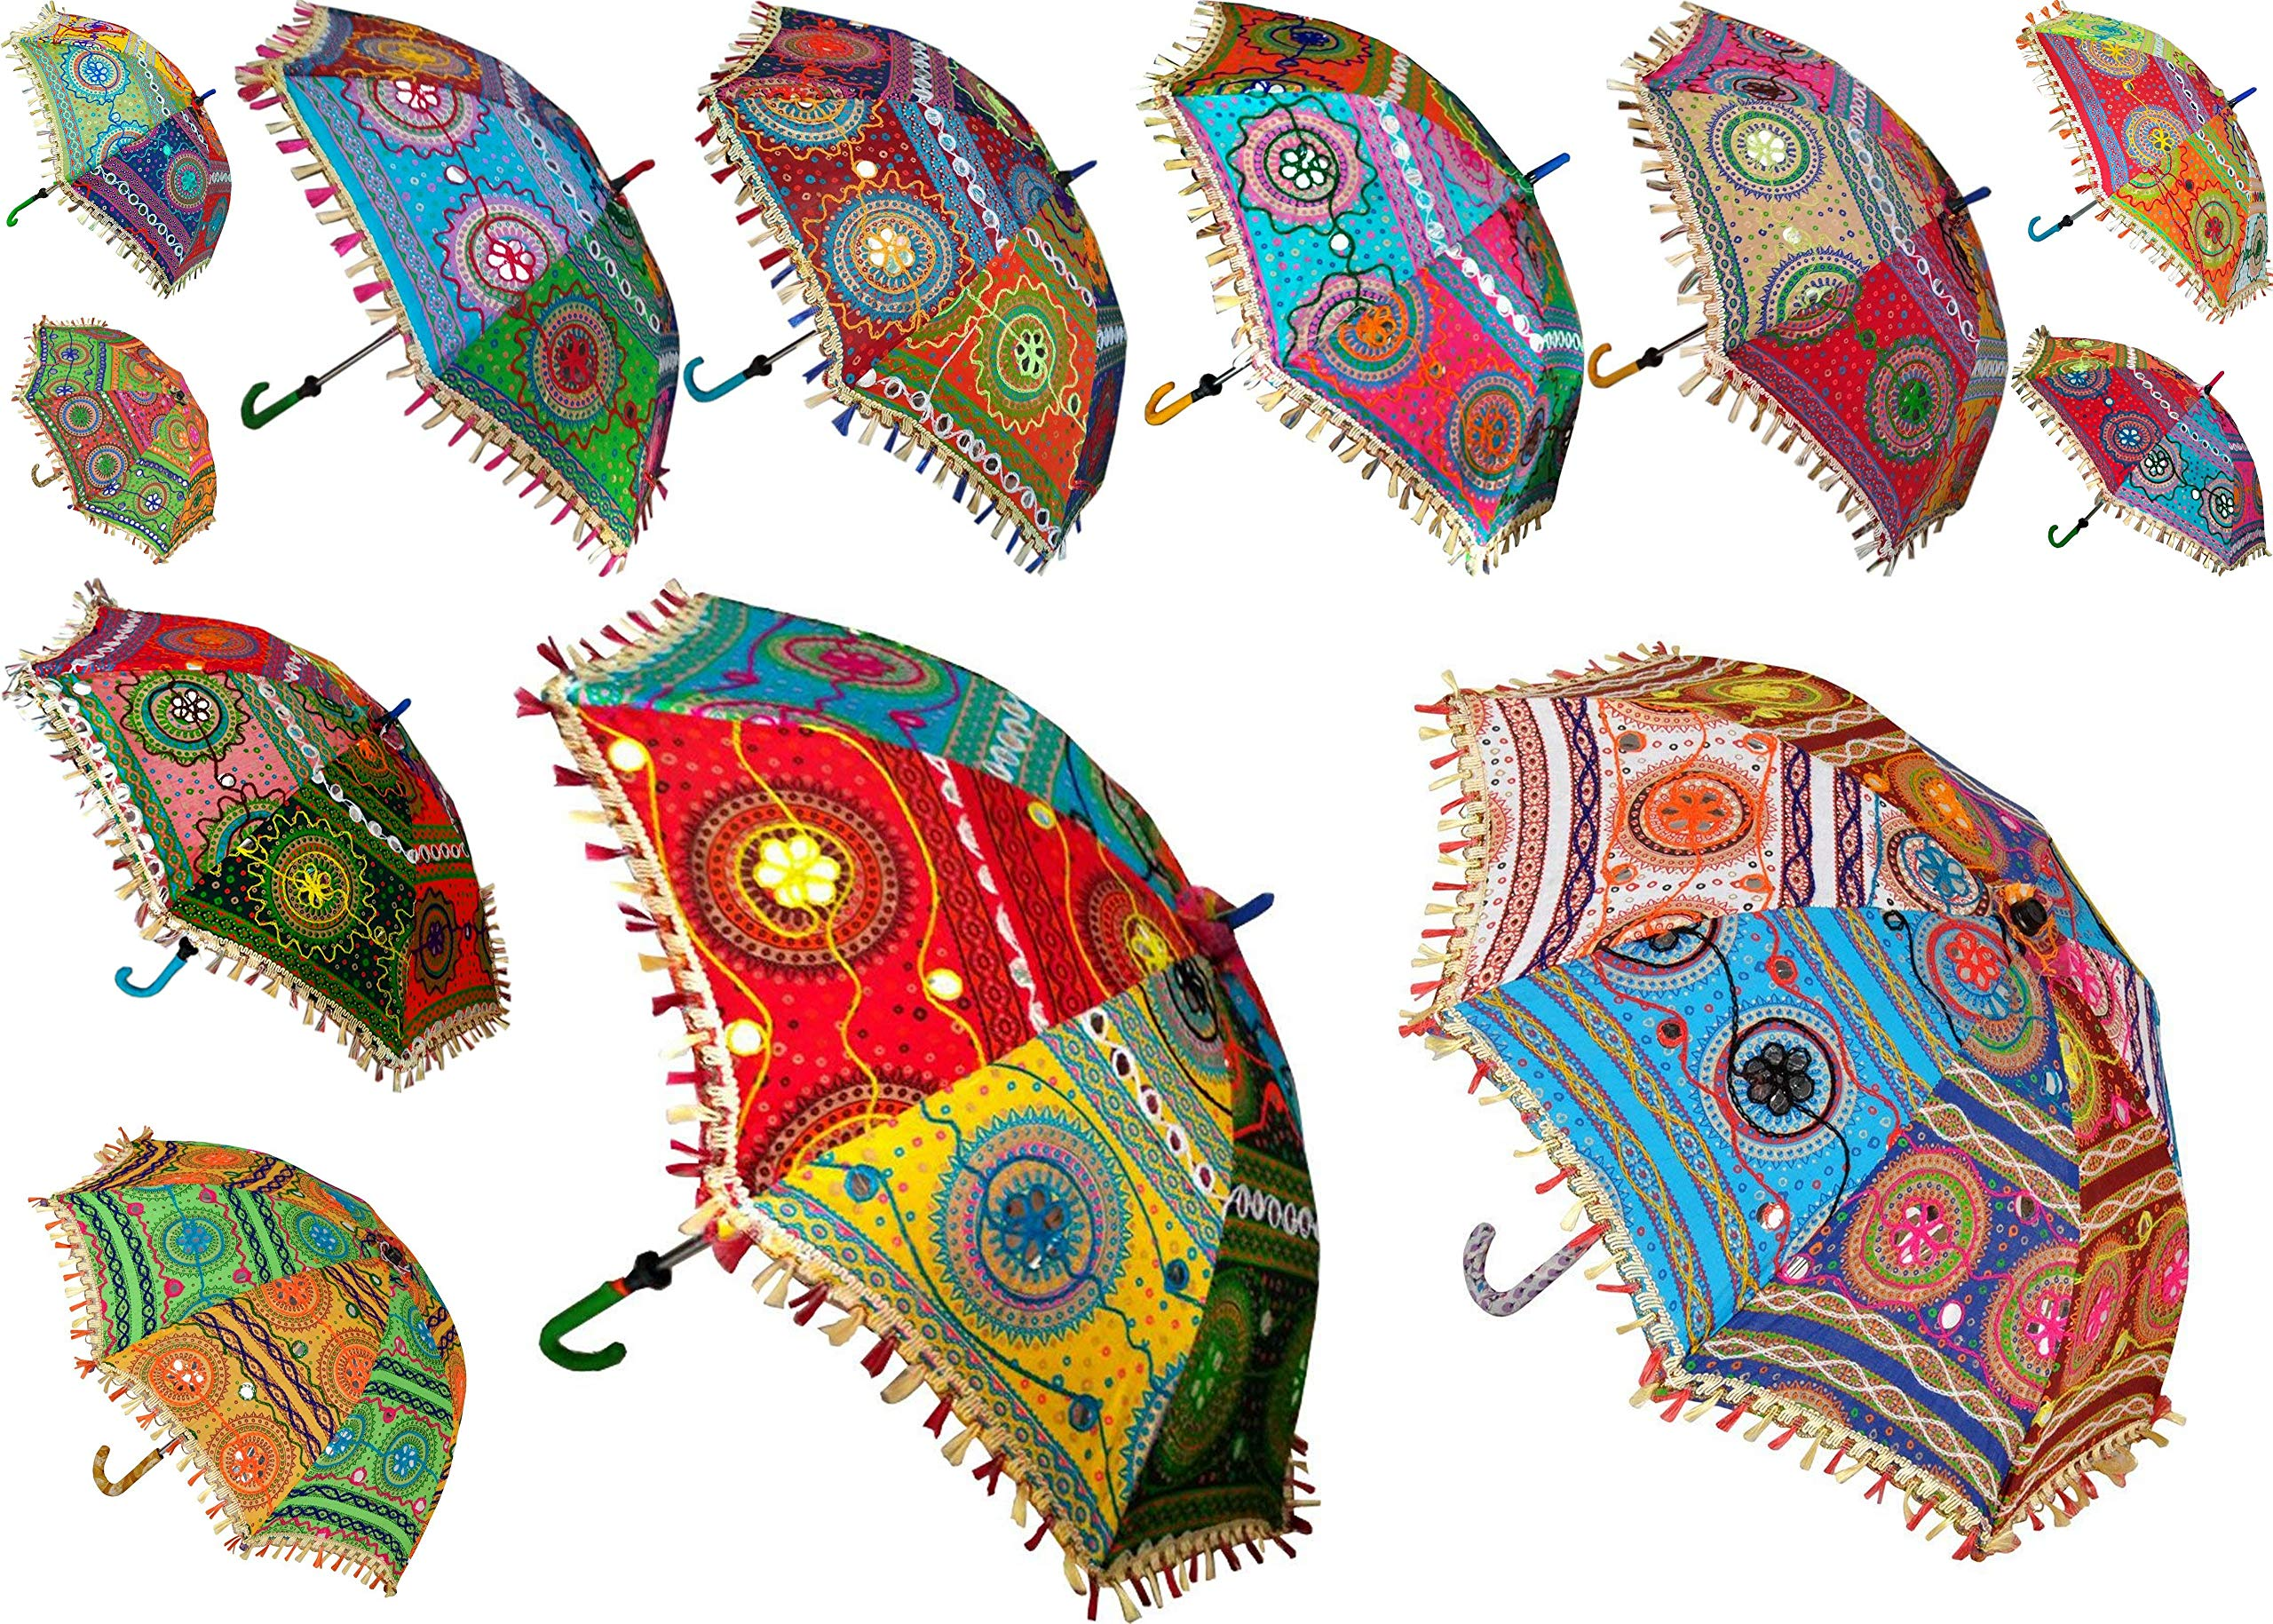 7 Pcs Lot Indian Cotton Fabric Mirror Work Vintage Parasols Wedding Umbrella Outdoor Decorations Handmade Embroidery Ethnic Umbrella Parasol by Worldoftextile